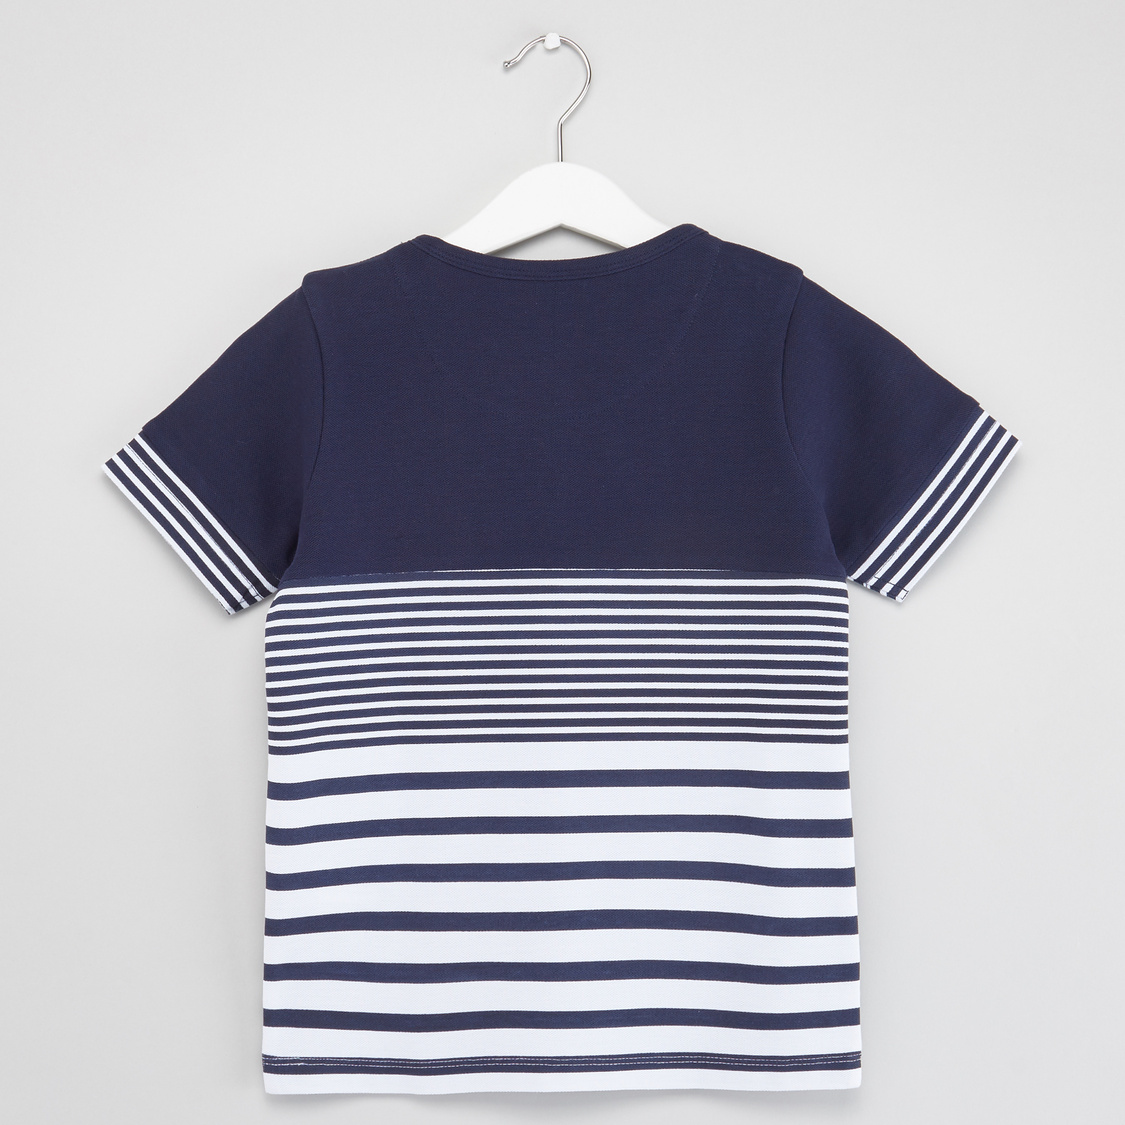 Striped Short Sleeves T-shirt with Solid Shorts